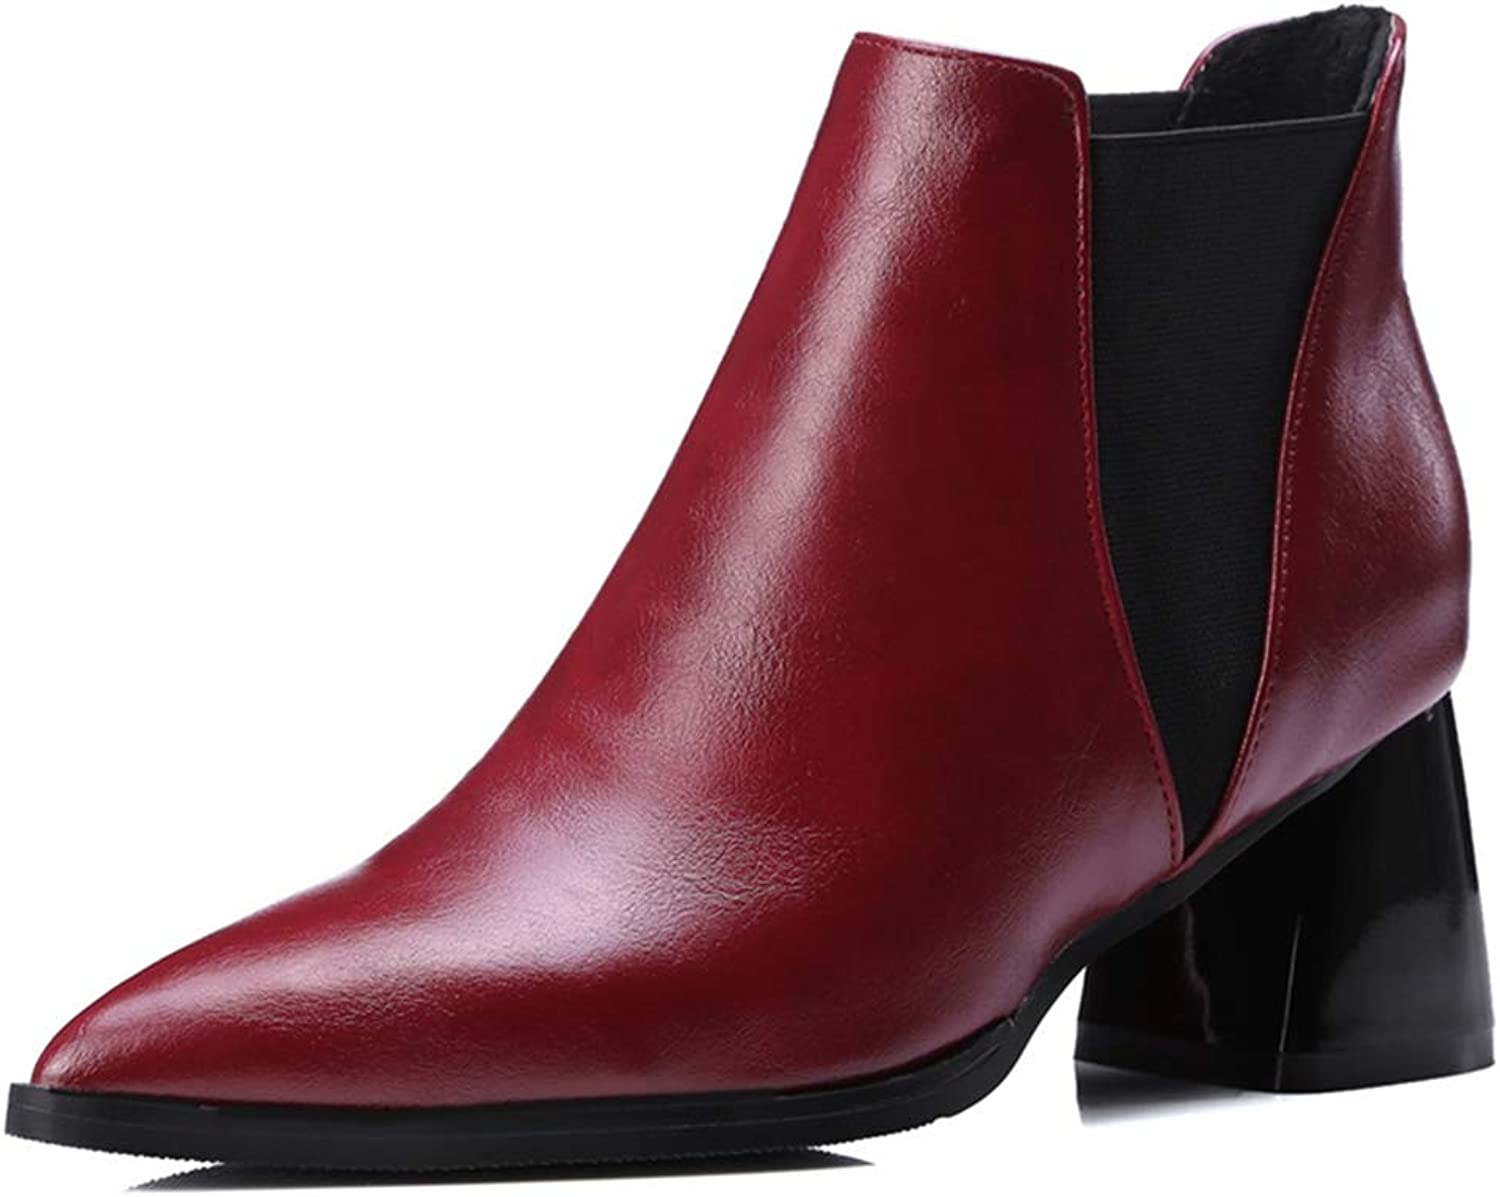 GIY Women's Pointed Toe Elastic Side Panel Ankle Boots Fashion Block Heel Chelsea Booties Martin Boot